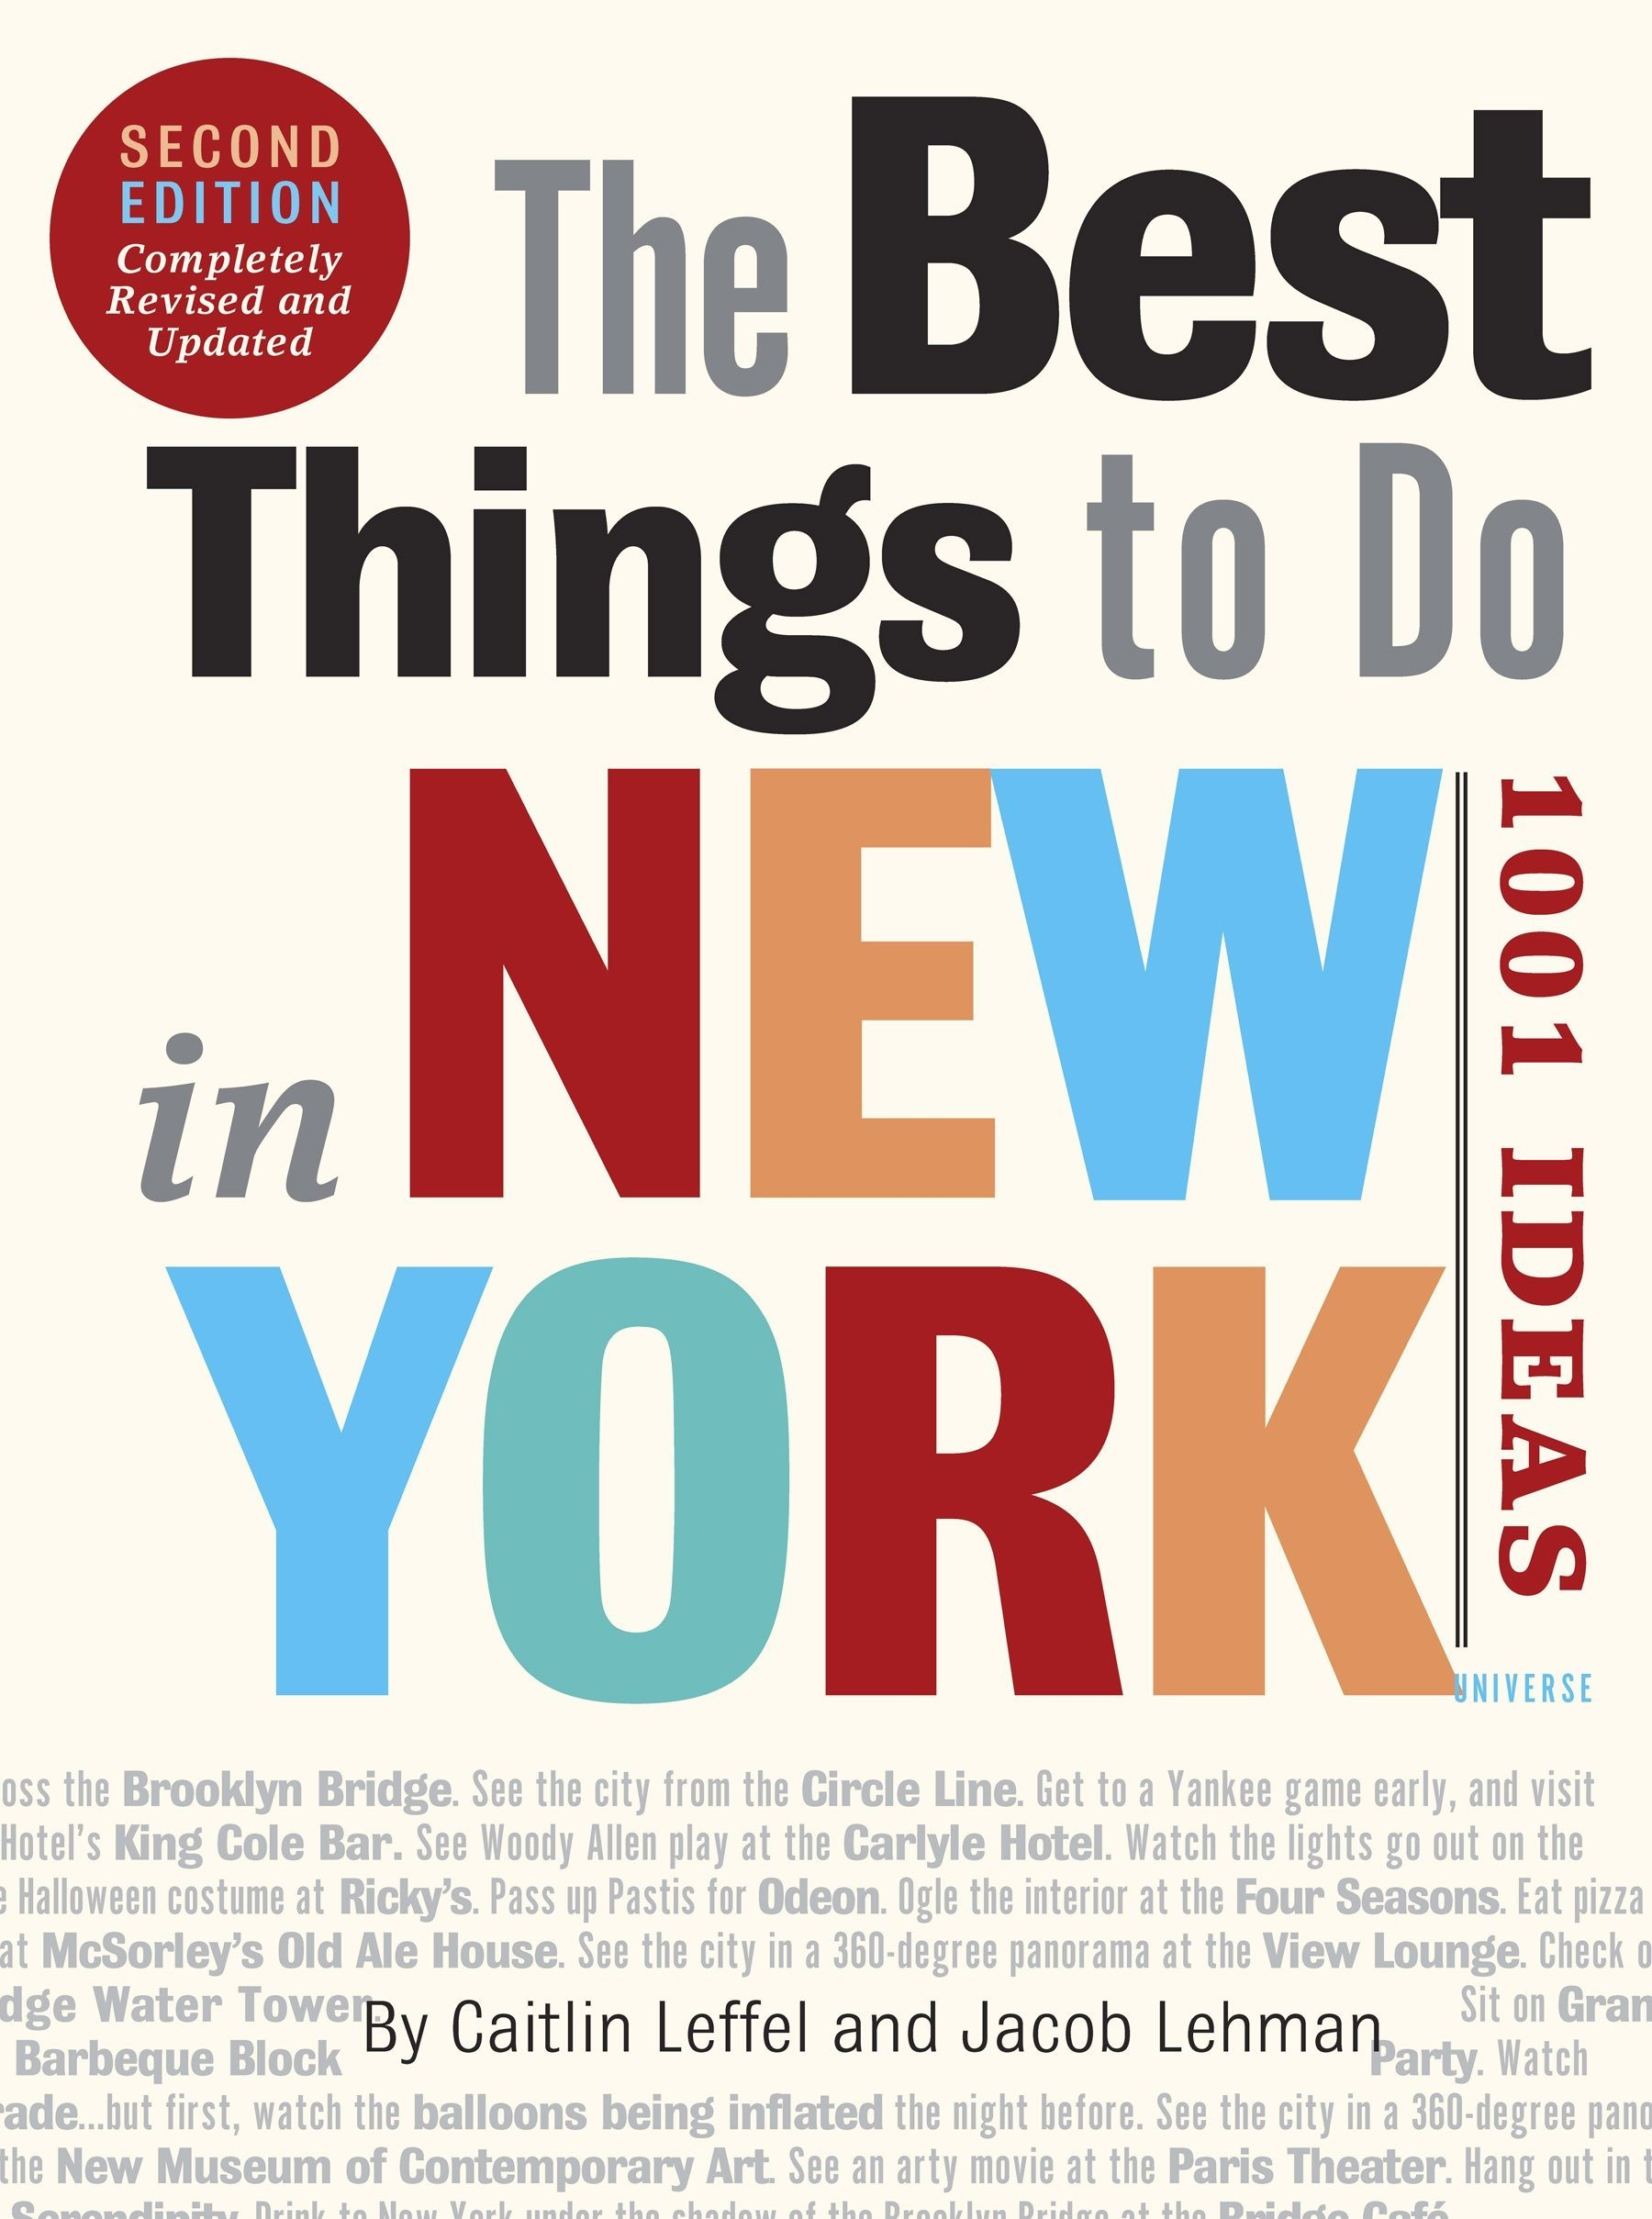 The Best Things to Do in New York, Second Edition: 1001 Ideas: Caitlin  Leffel, Jacob Lehman: 9780789320261: Amazon.com: Books